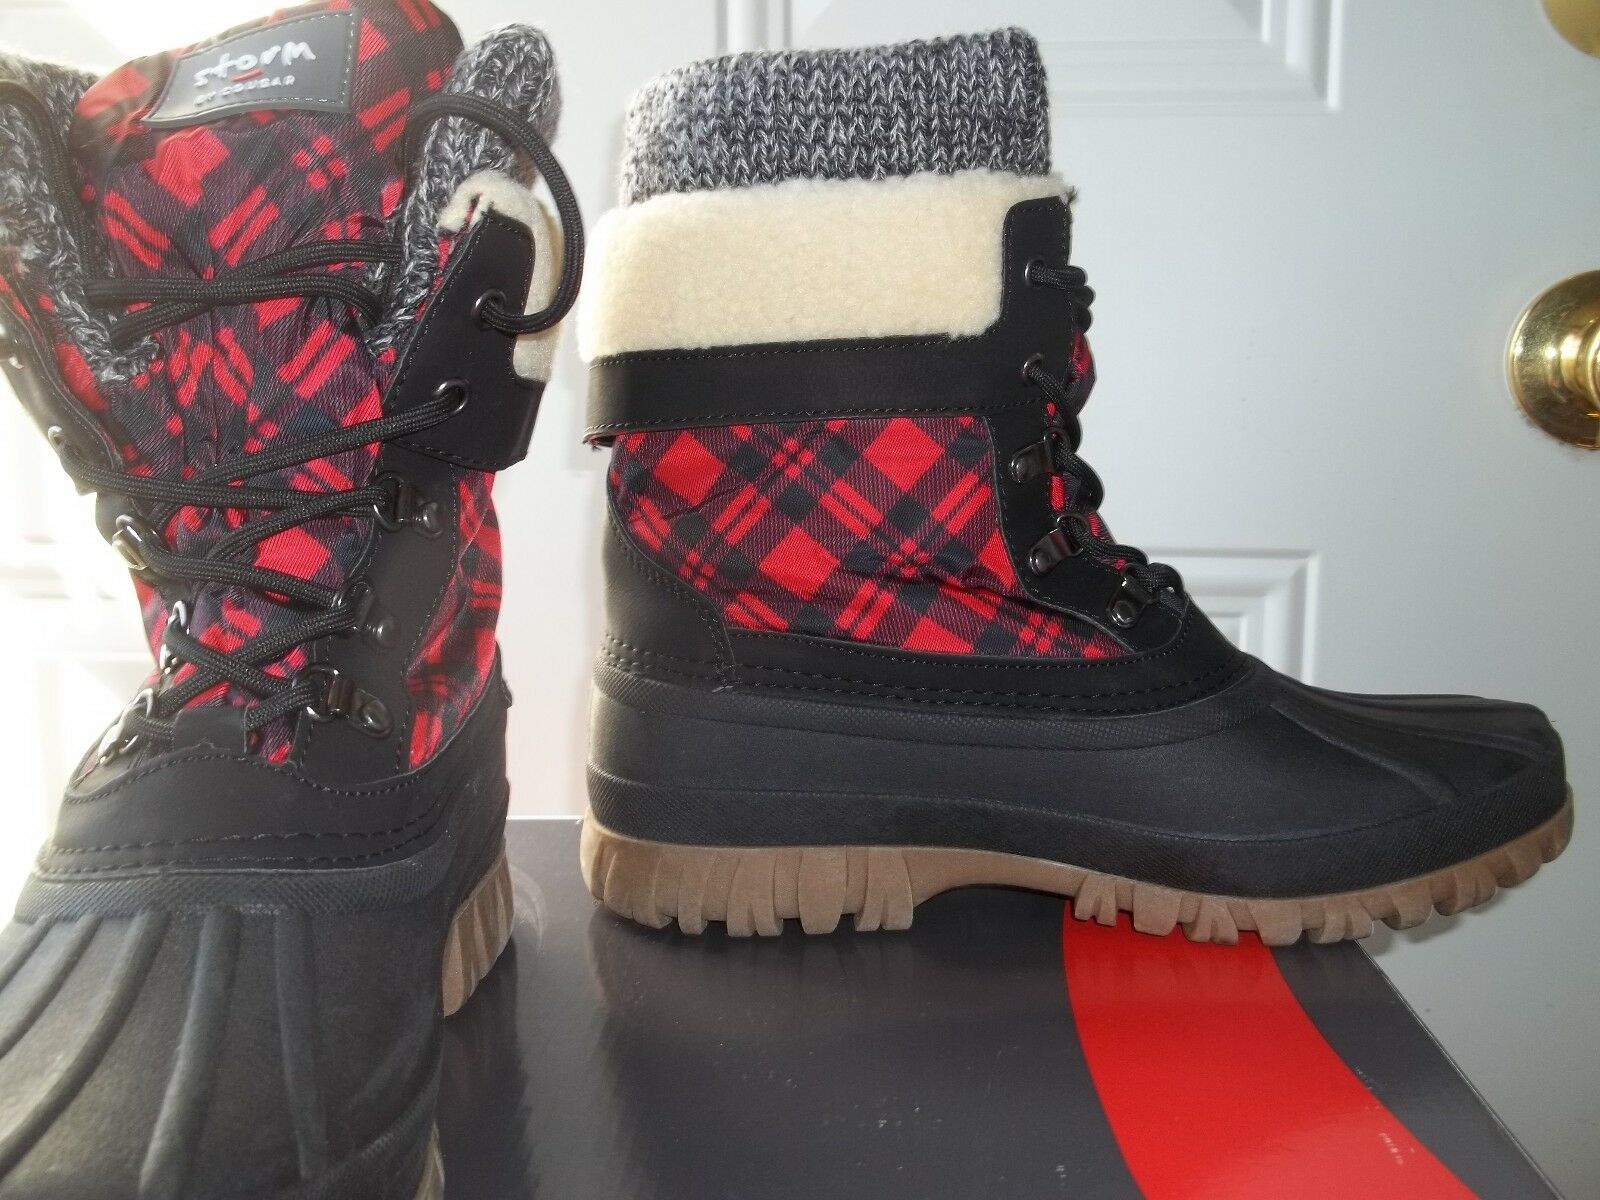 Cougar Waterproof Lace-Up Lace-Up Waterproof ROT Plaid With Fleece Lining Stiefel Größe 9 Med ad07ae